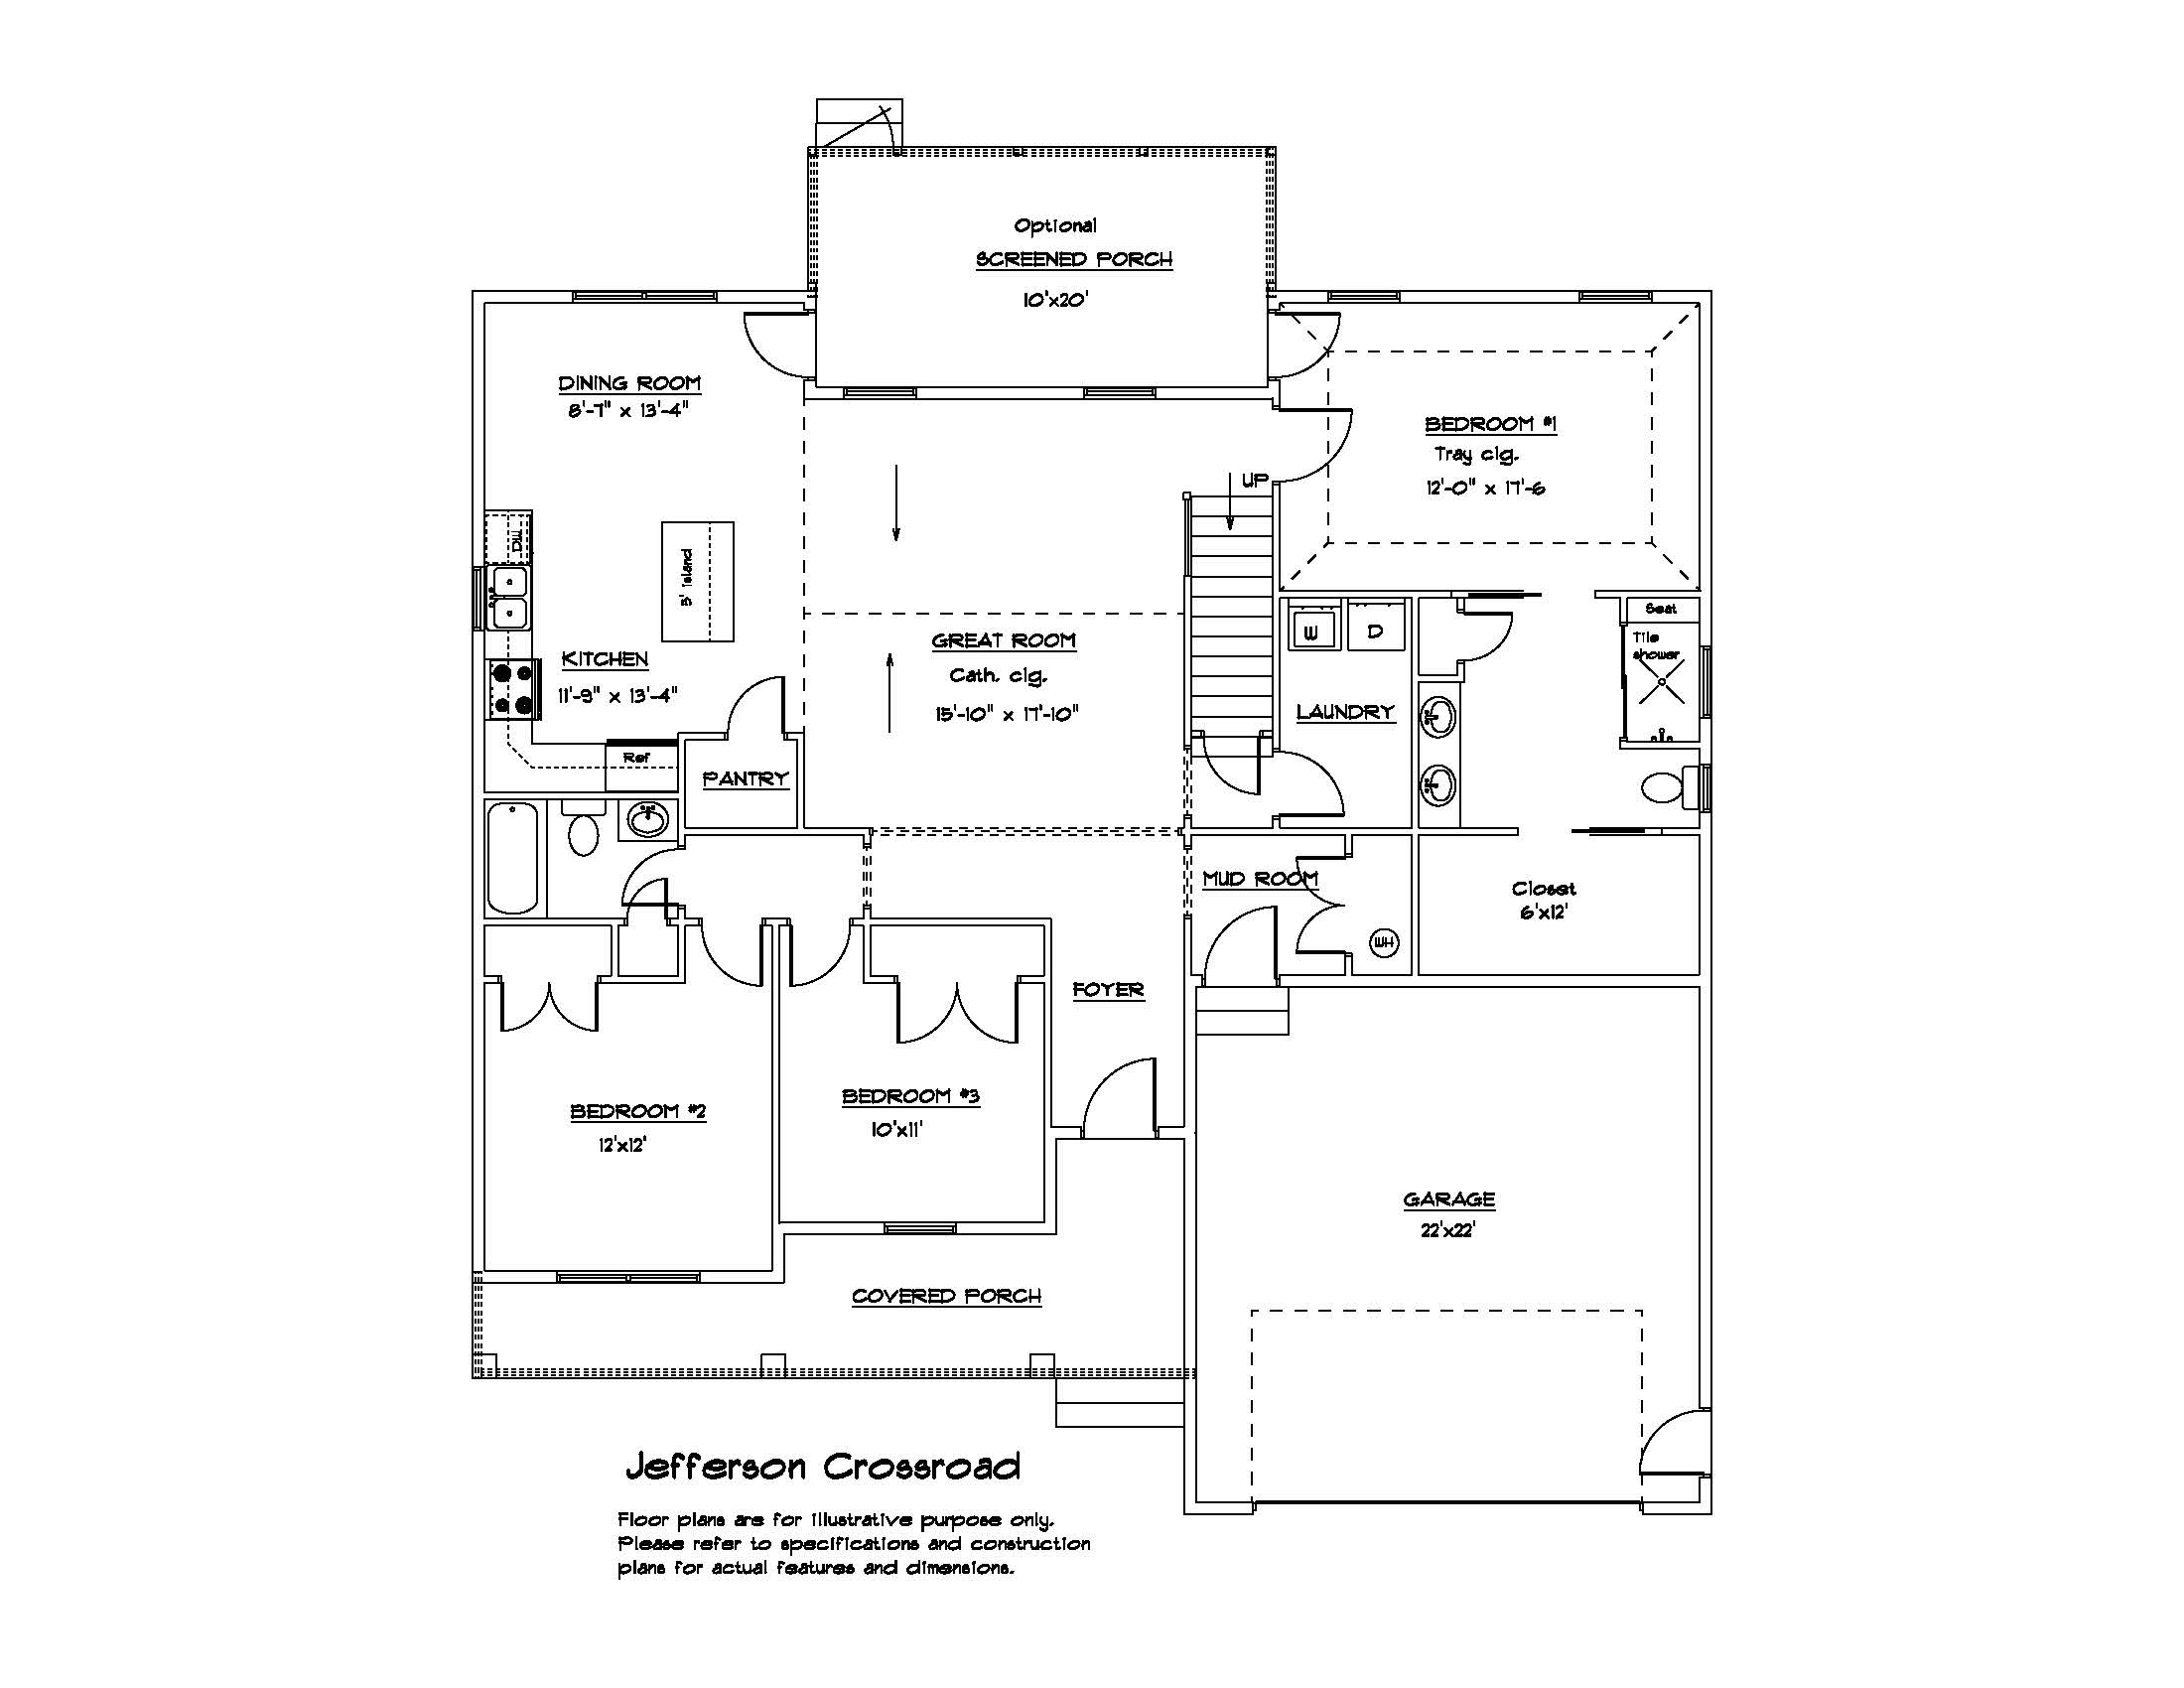 JC_Floor Plan brochure.jpg